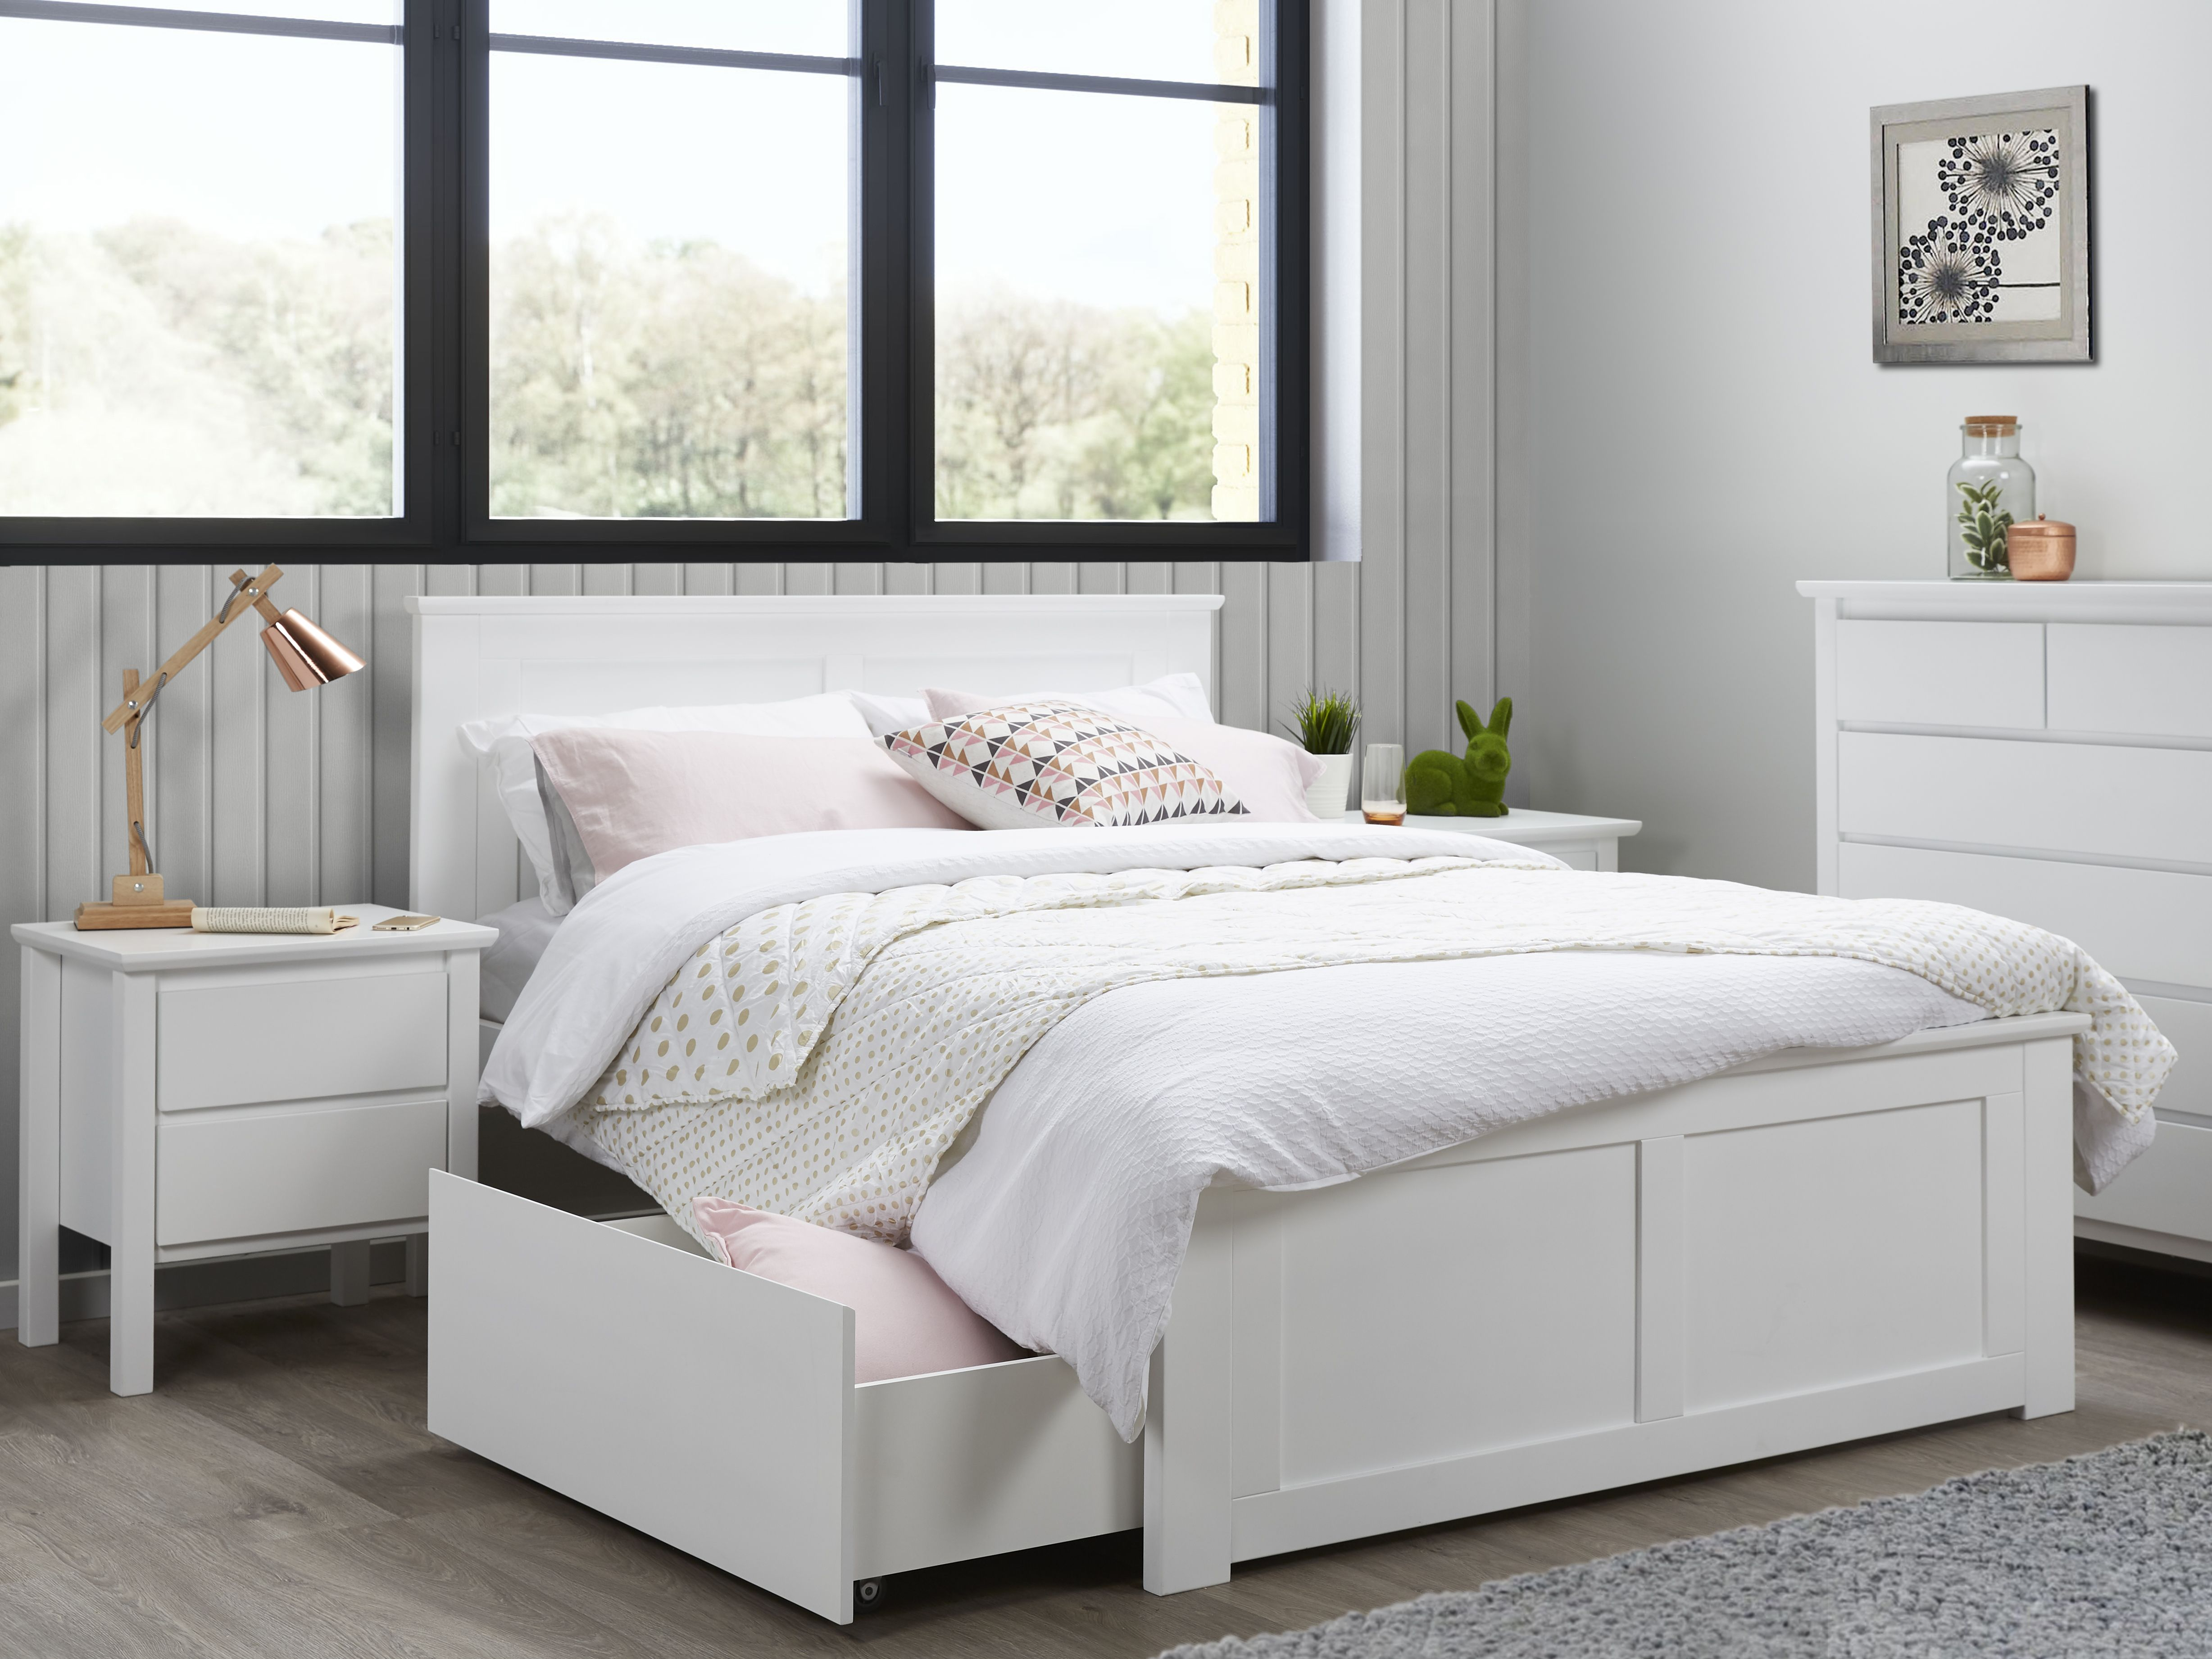 22+ Double bedroom furniture packages ideas in 2021